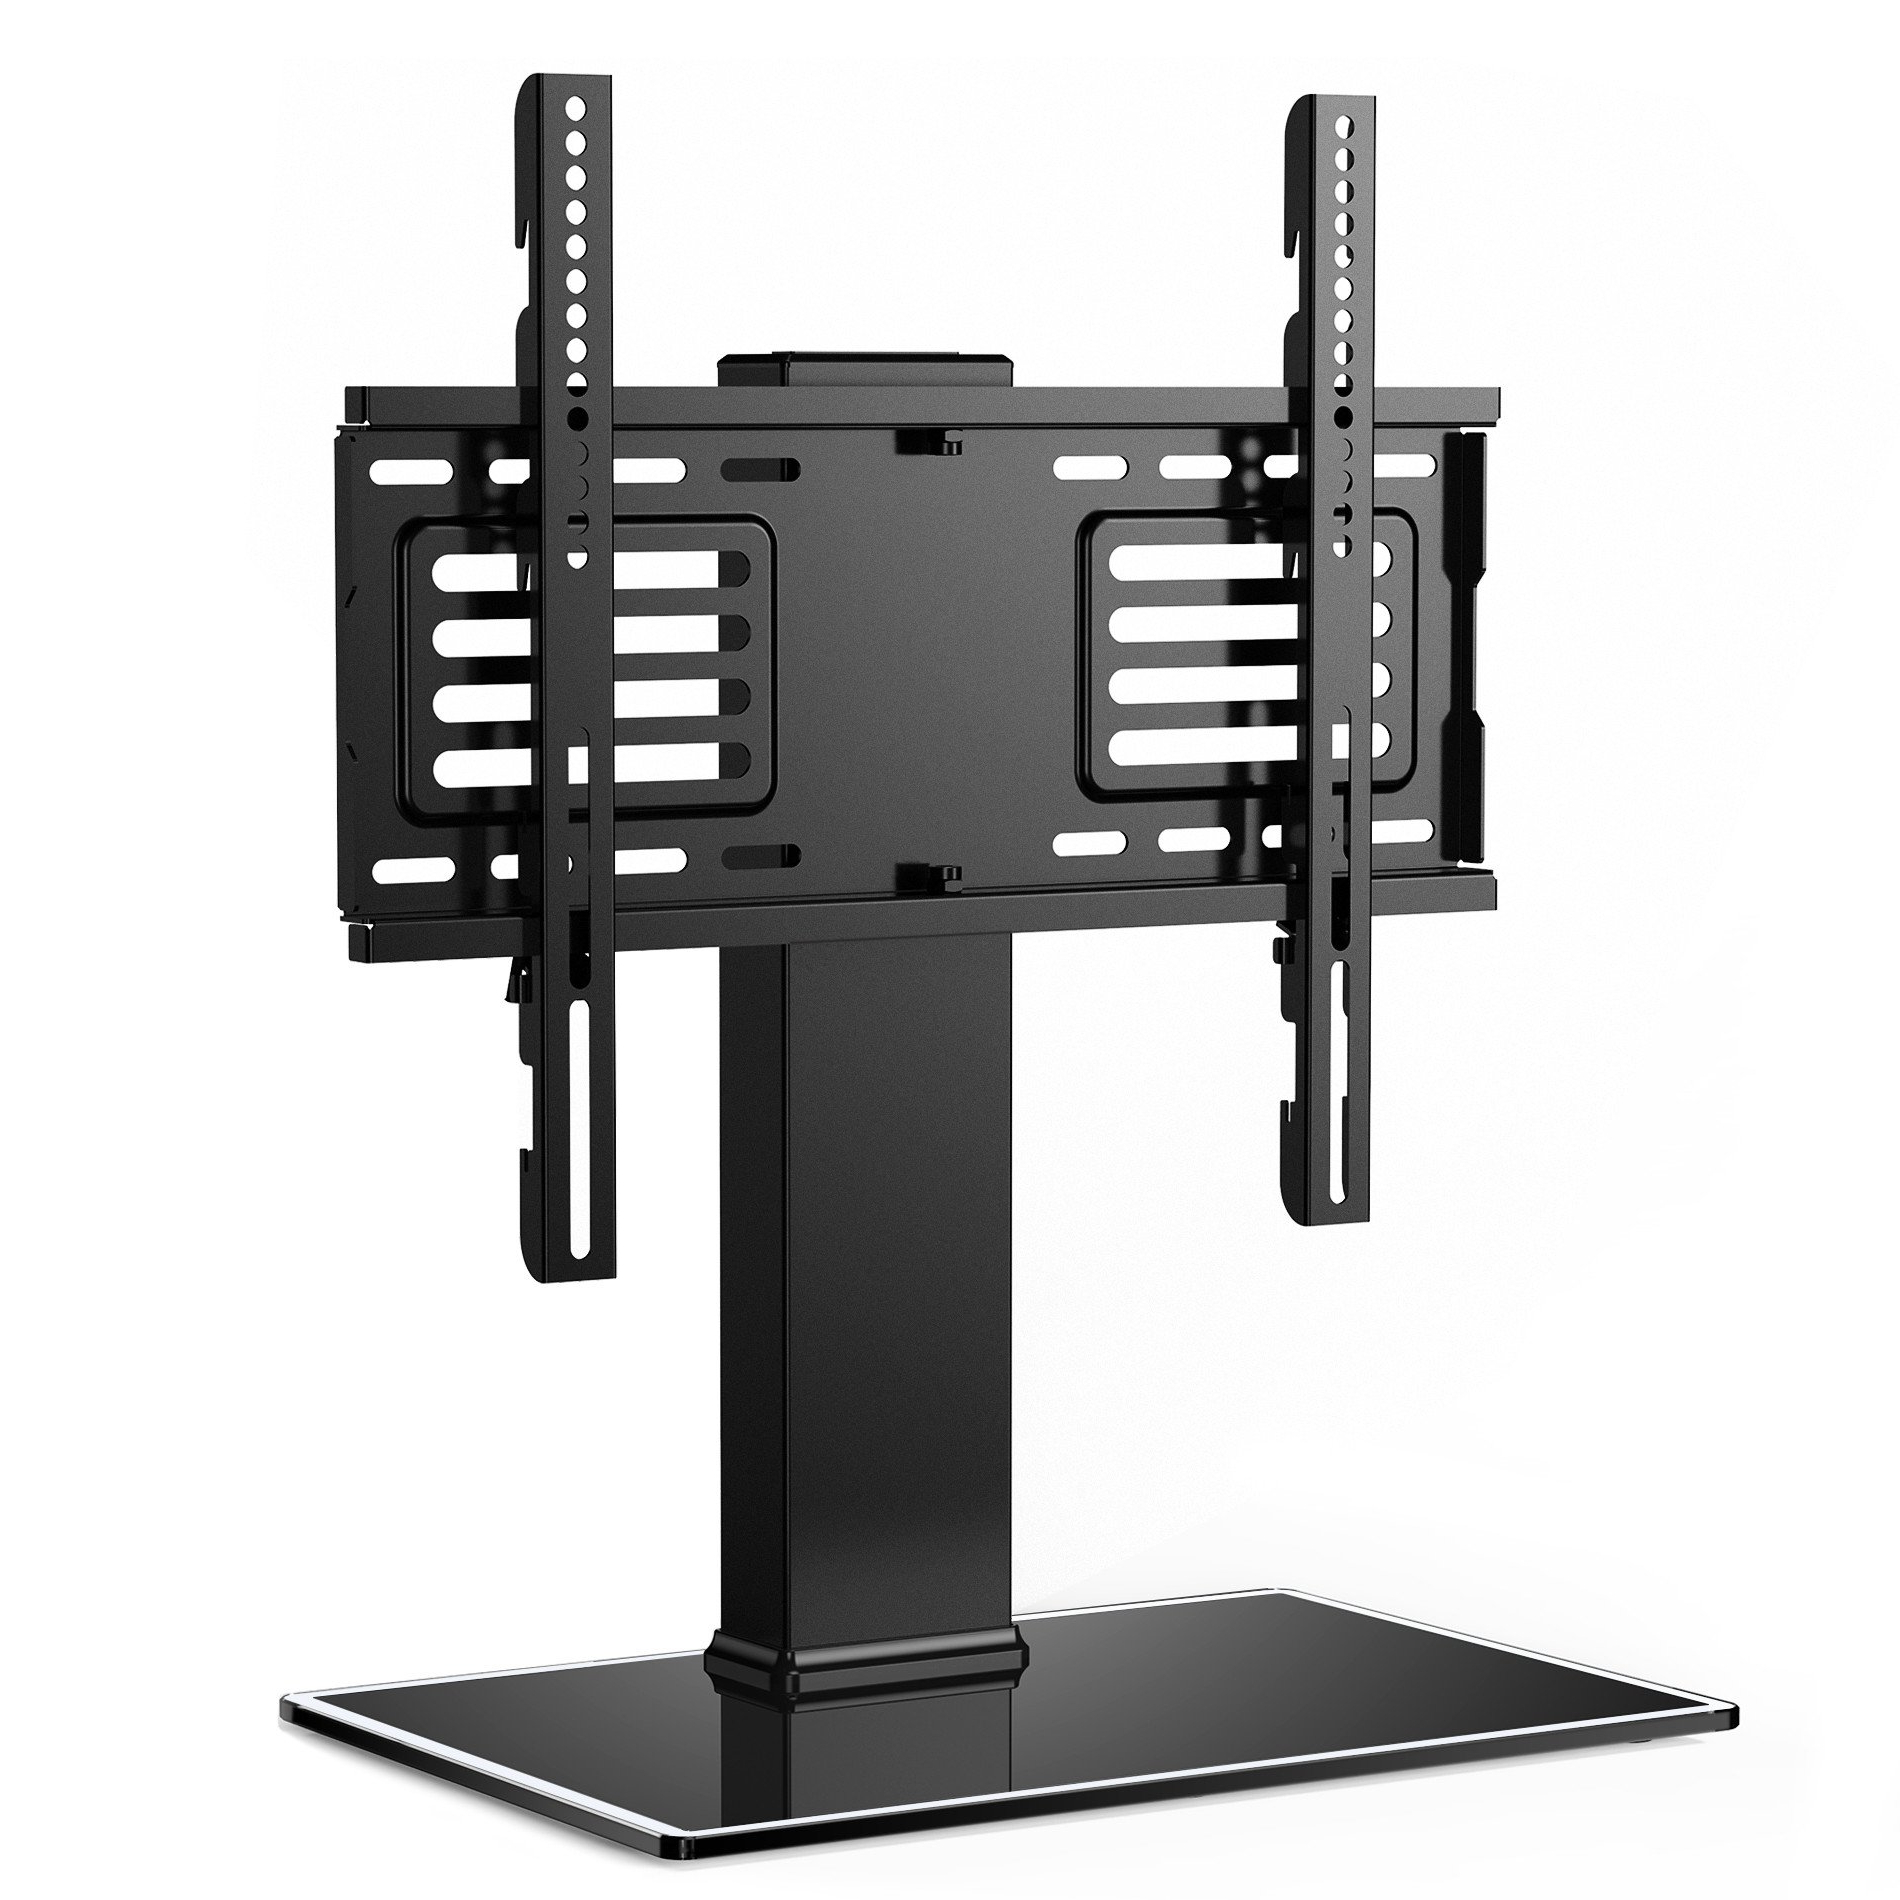 Fashionable Universal Tv Stand With Swivel Mount Pedestal Base Wall Mount For 32 In Tv Stands Swivel Mount (Gallery 3 of 20)